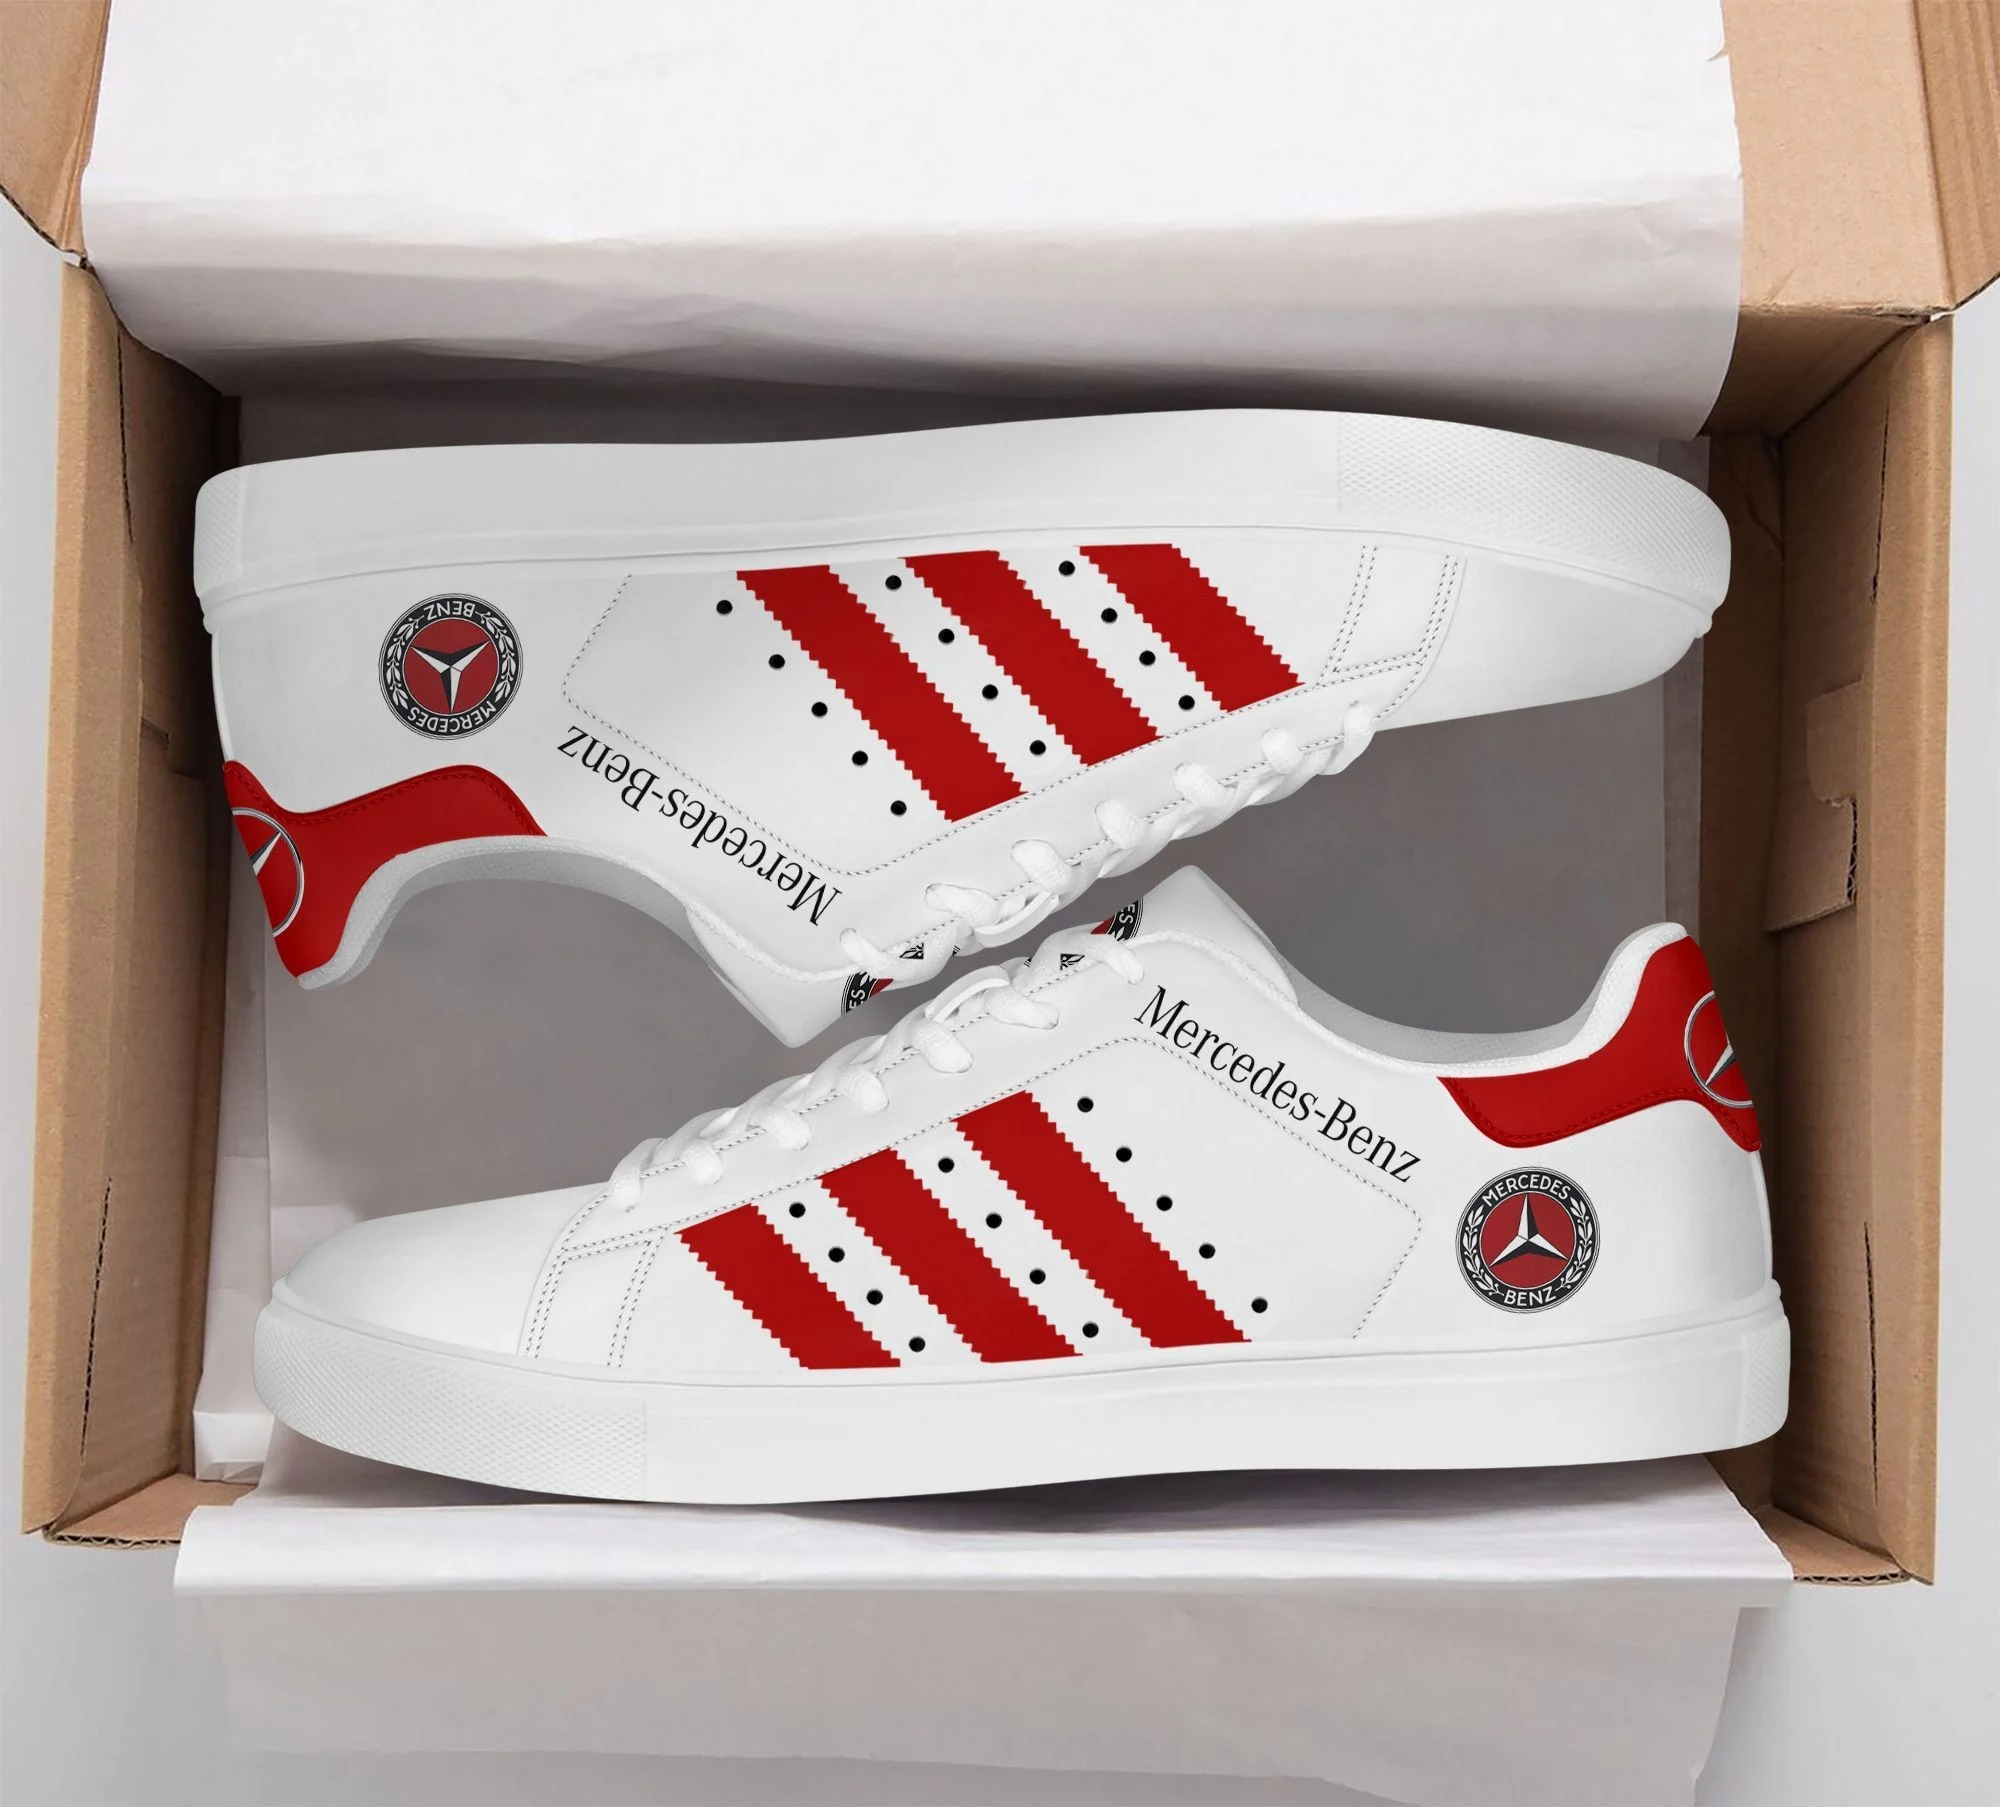 Mercedes-benz stan smith low top shoes 2